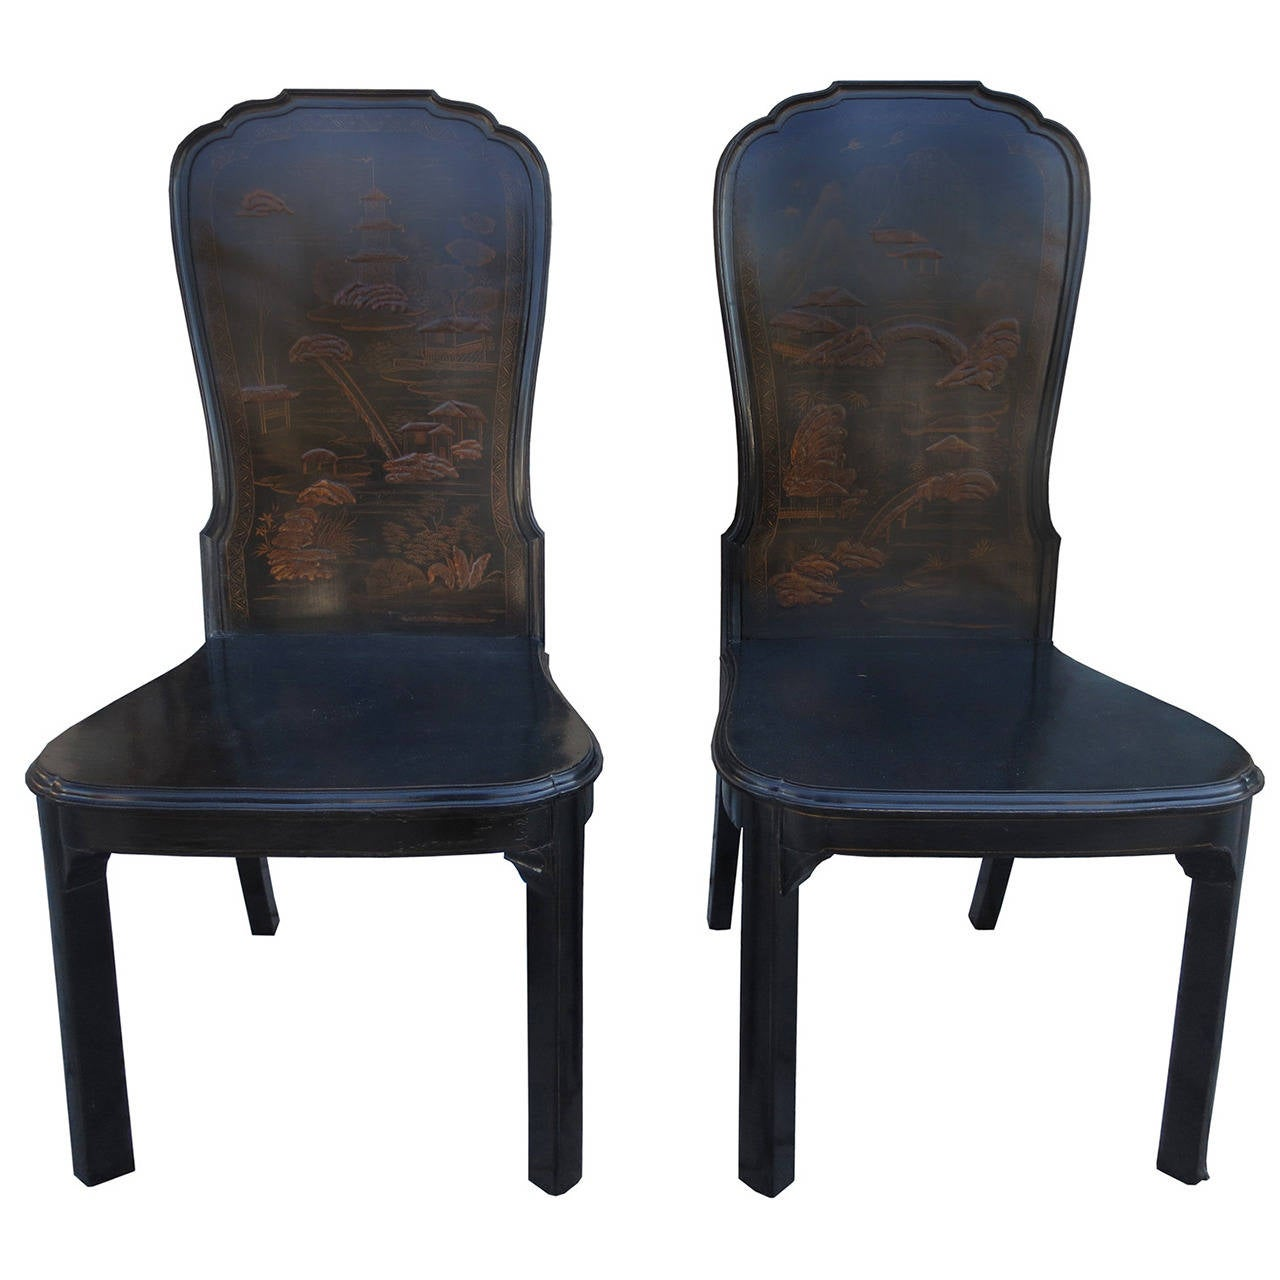 Pair Of 19th Early 20th Century Chinoiserie Hall Chairs At 1stdibs